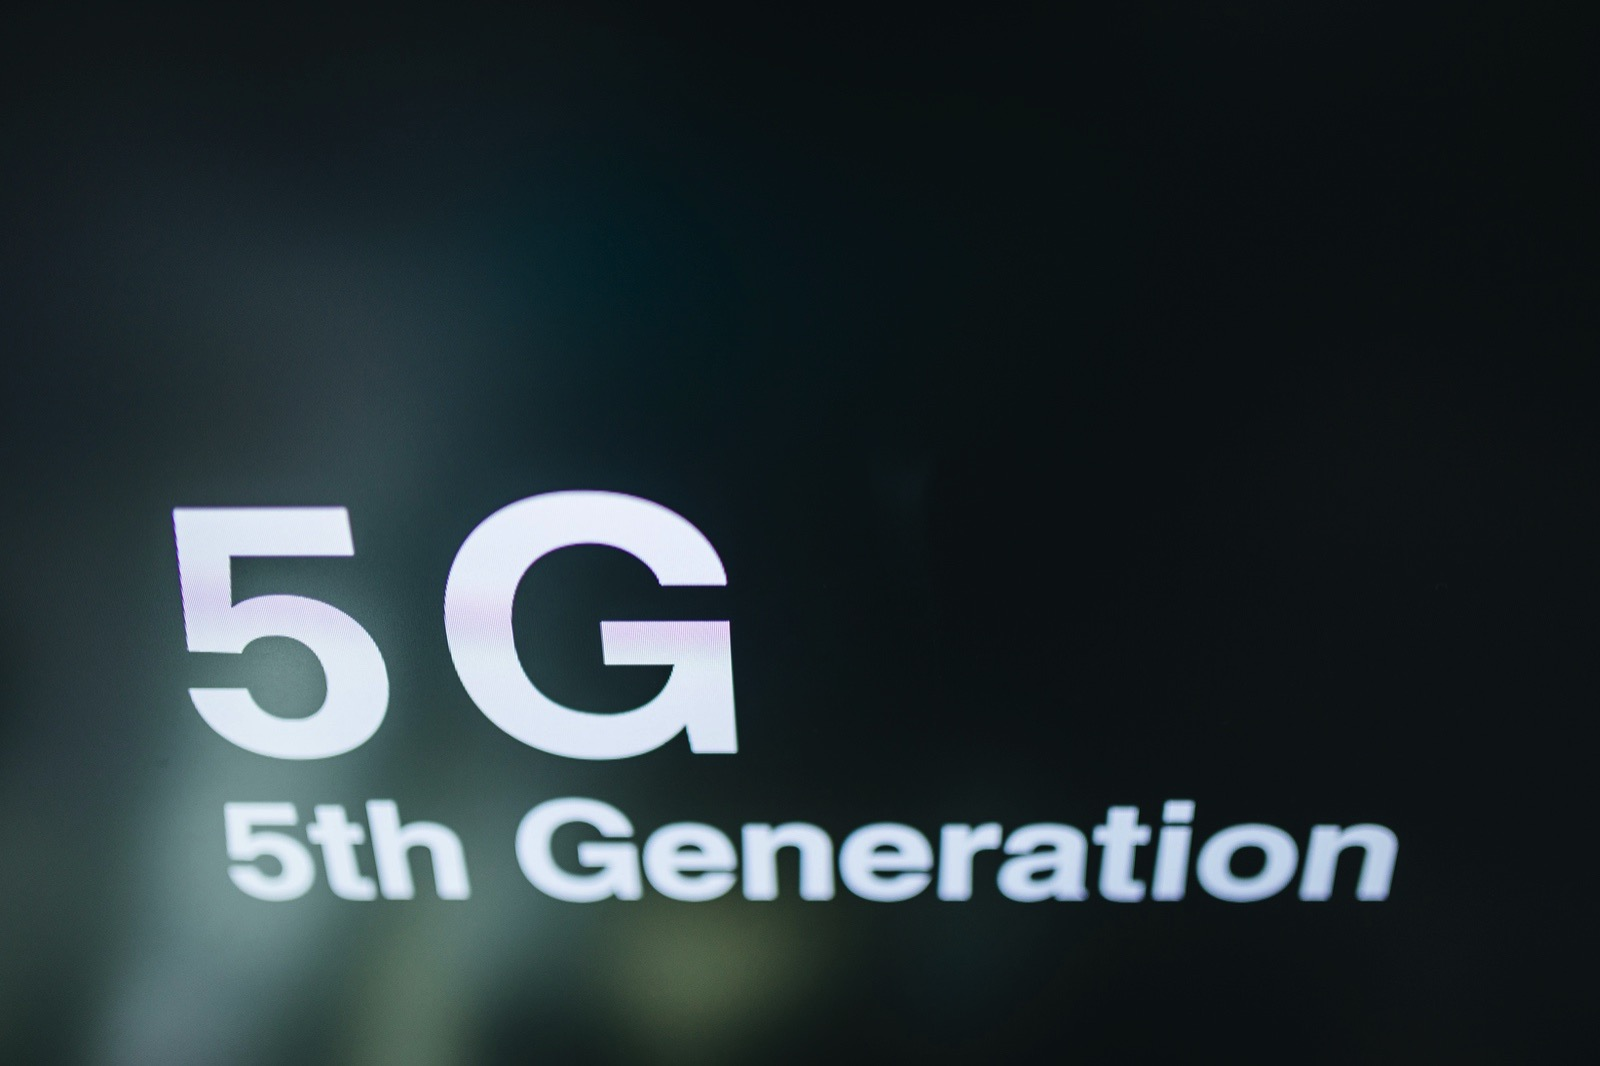 5G is 5th gen not 5GH 39